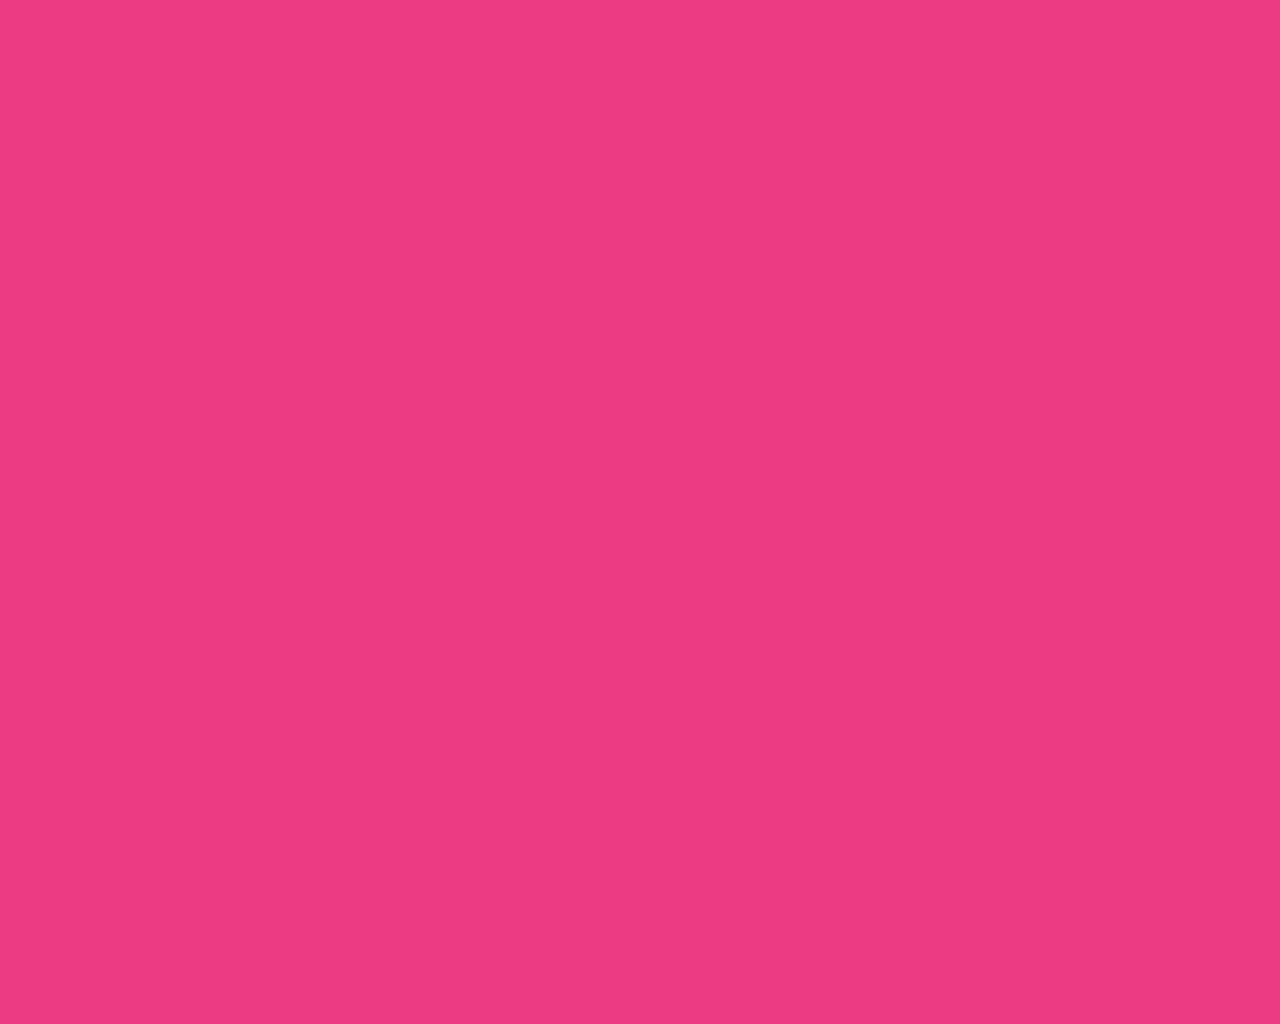 Plain Color Pink Backgrounds Images Pictures   Becuo 1280x1024